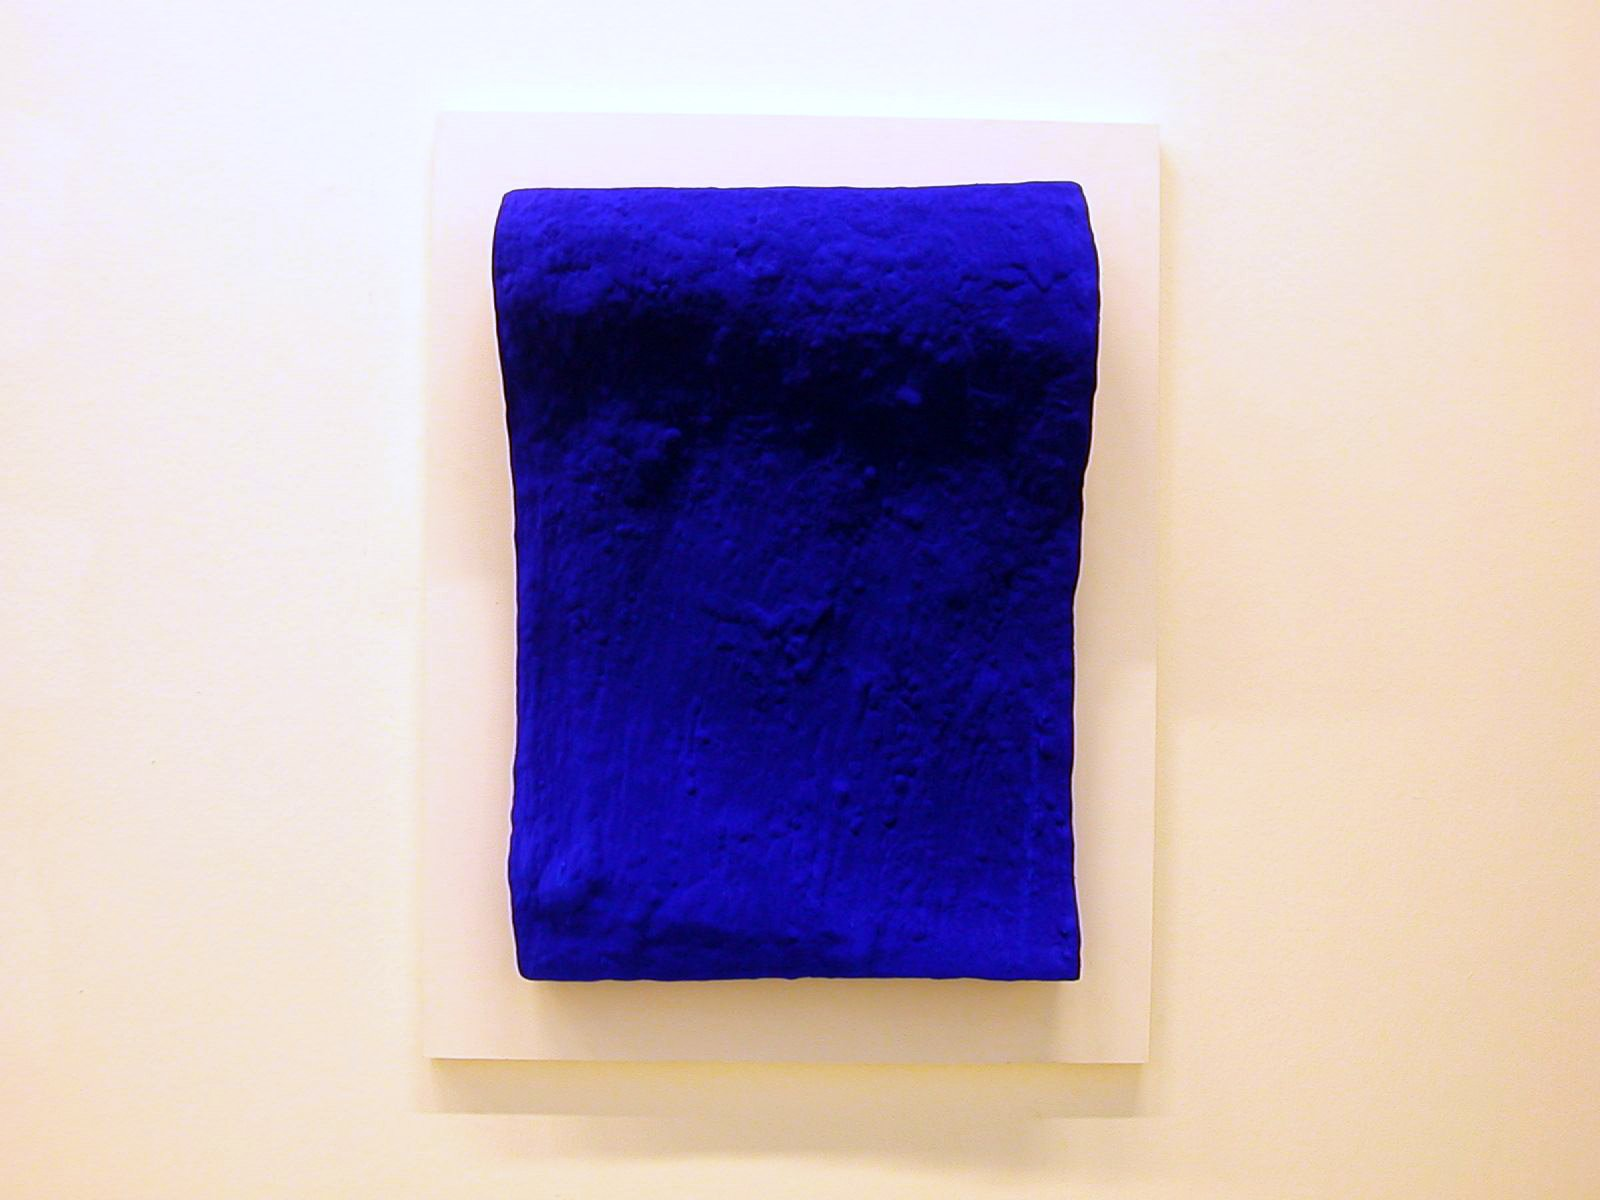 http://philippe.gambette.free.fr/Photos/MuseeArtModerneParis/Yves%20Klein%20-%20La%20vague%20-%20Pigment%20pur%20et%20resine%20synthetique%20sur%20bronze.jpg